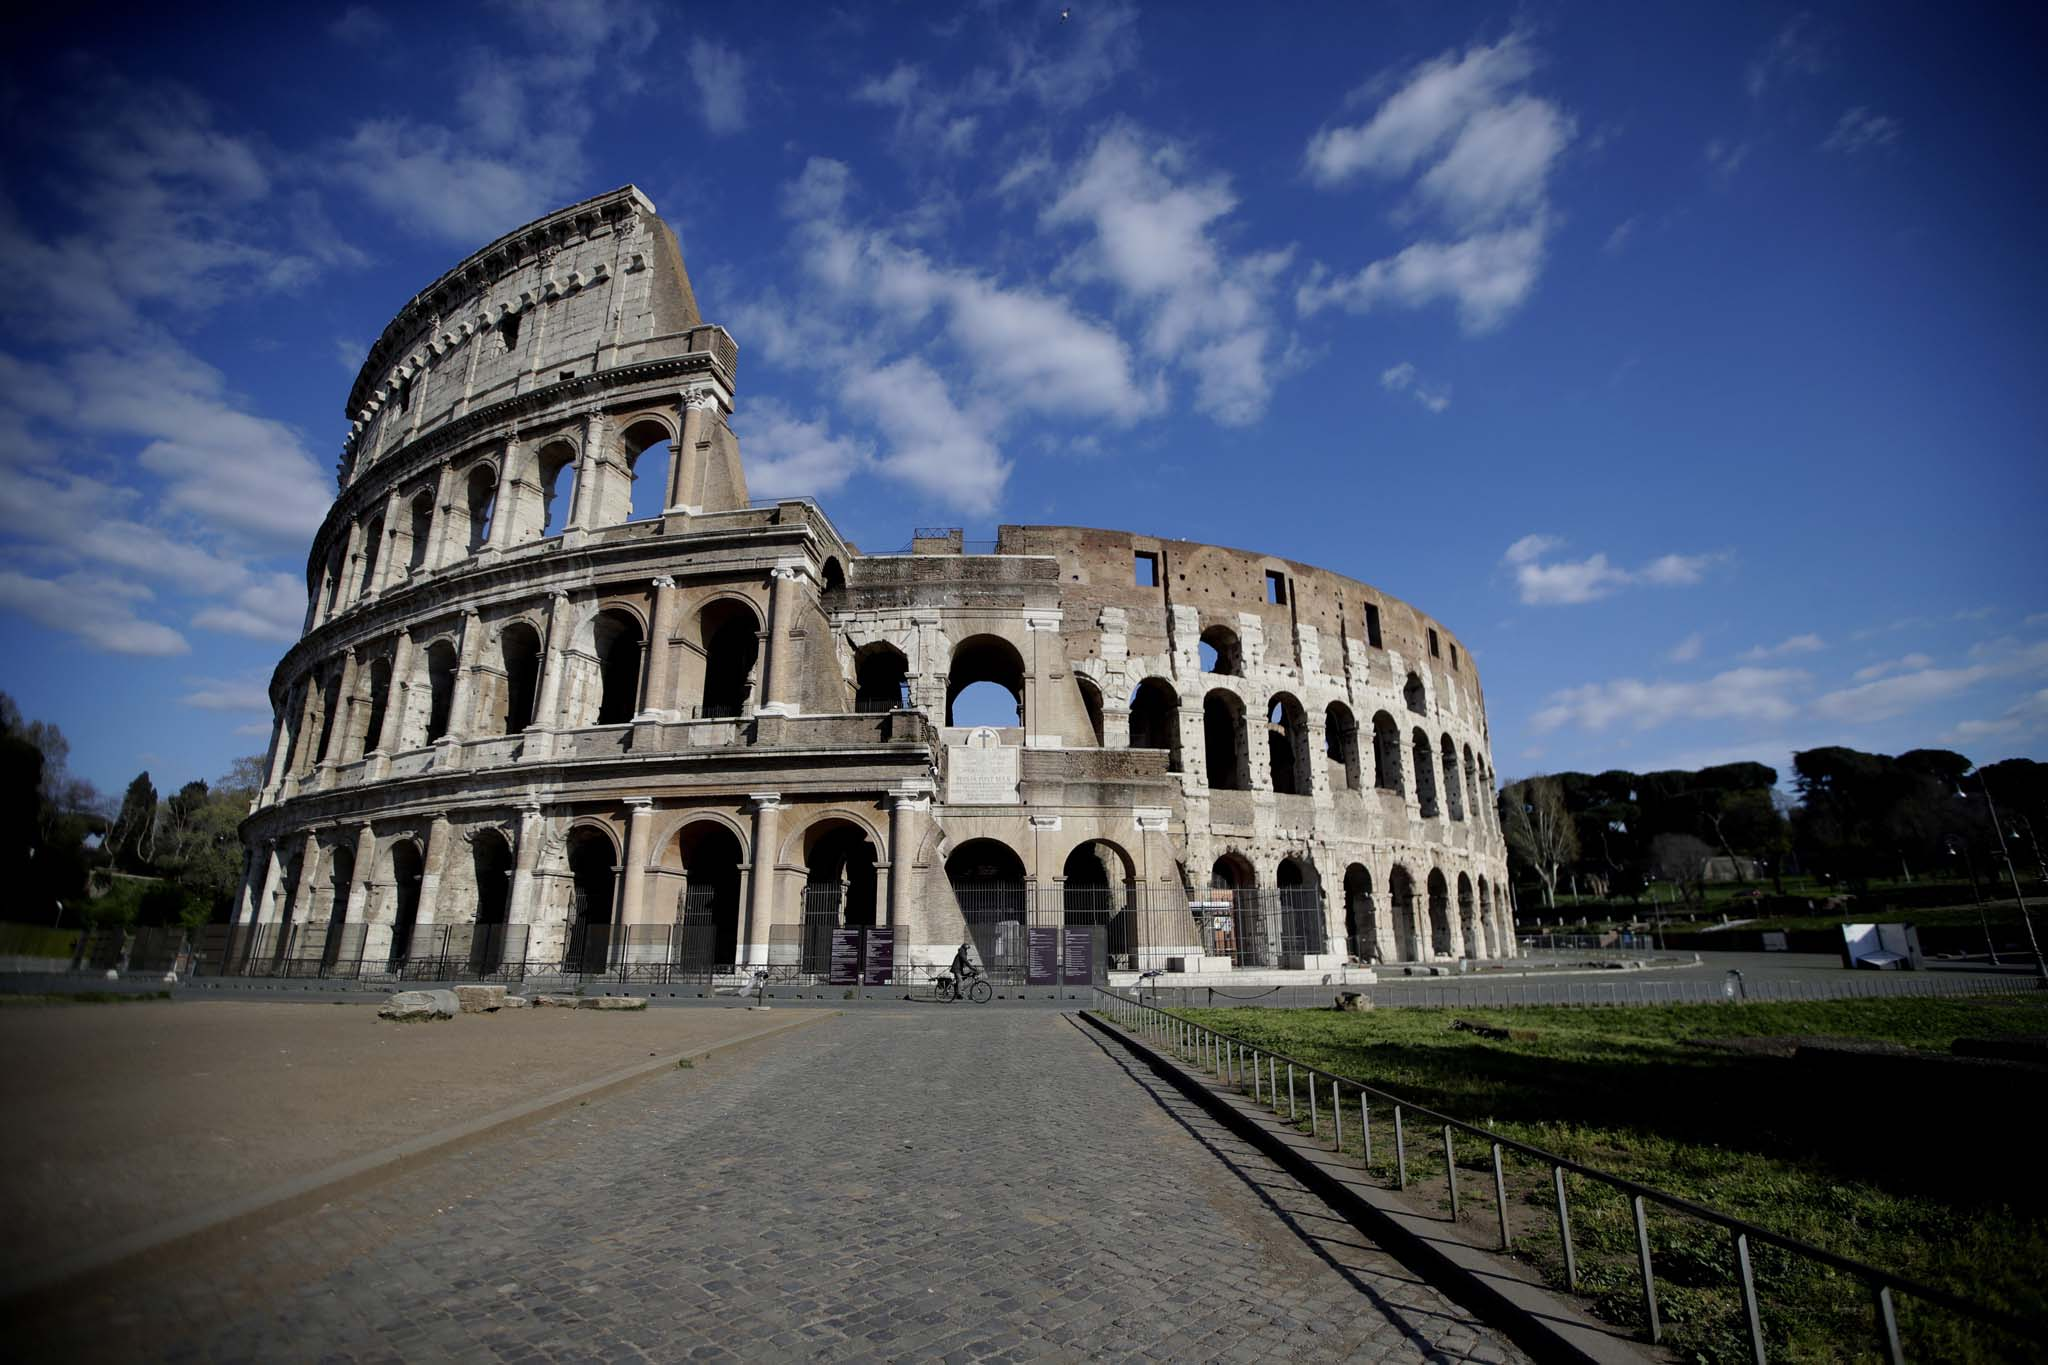 A man pedals in front of an empty area outside Rome's ancient Colosseum.